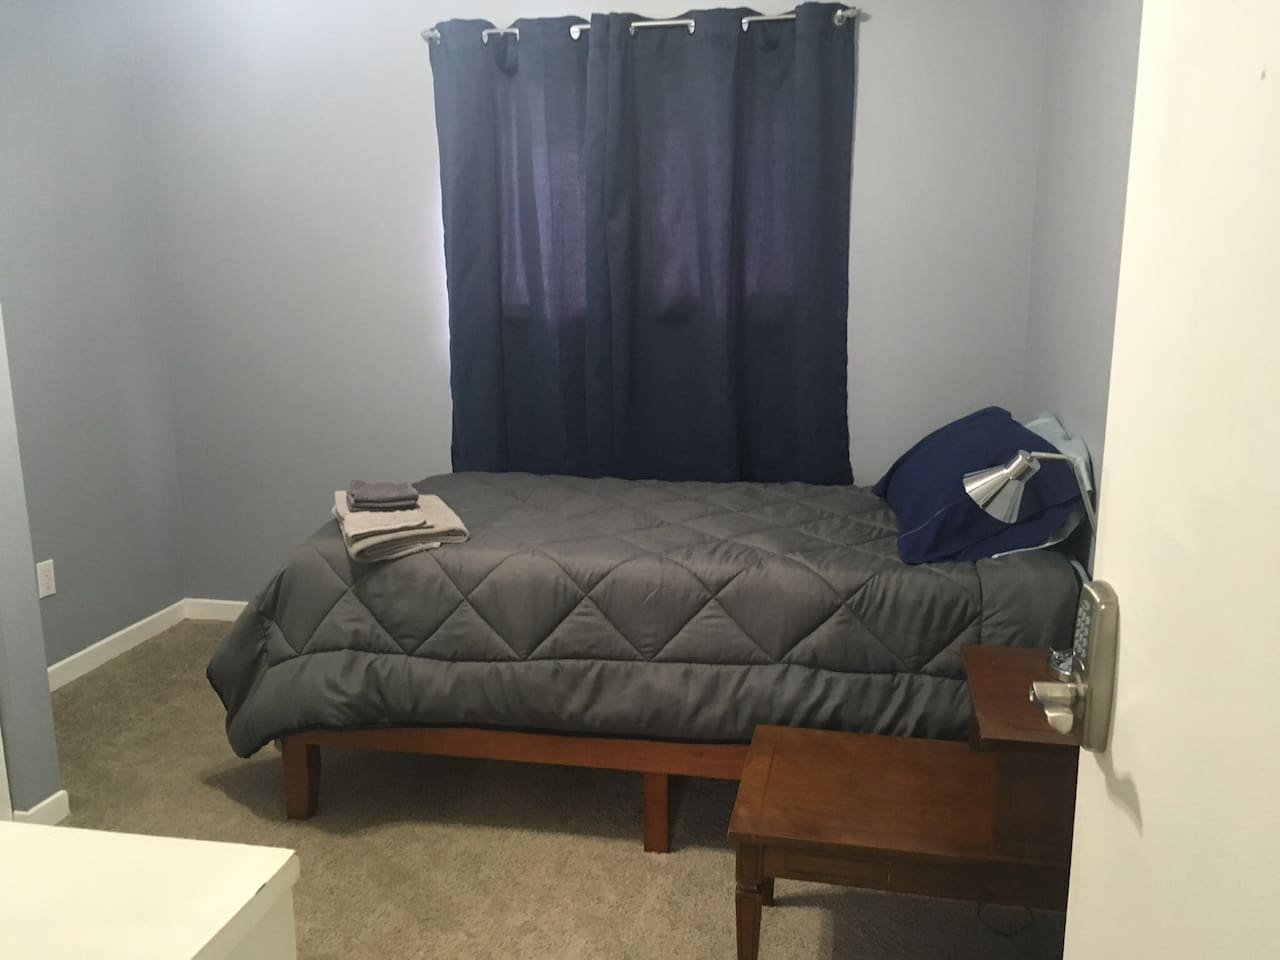 Single bed, dresser, nightstand, lamp, with ceiling fan.